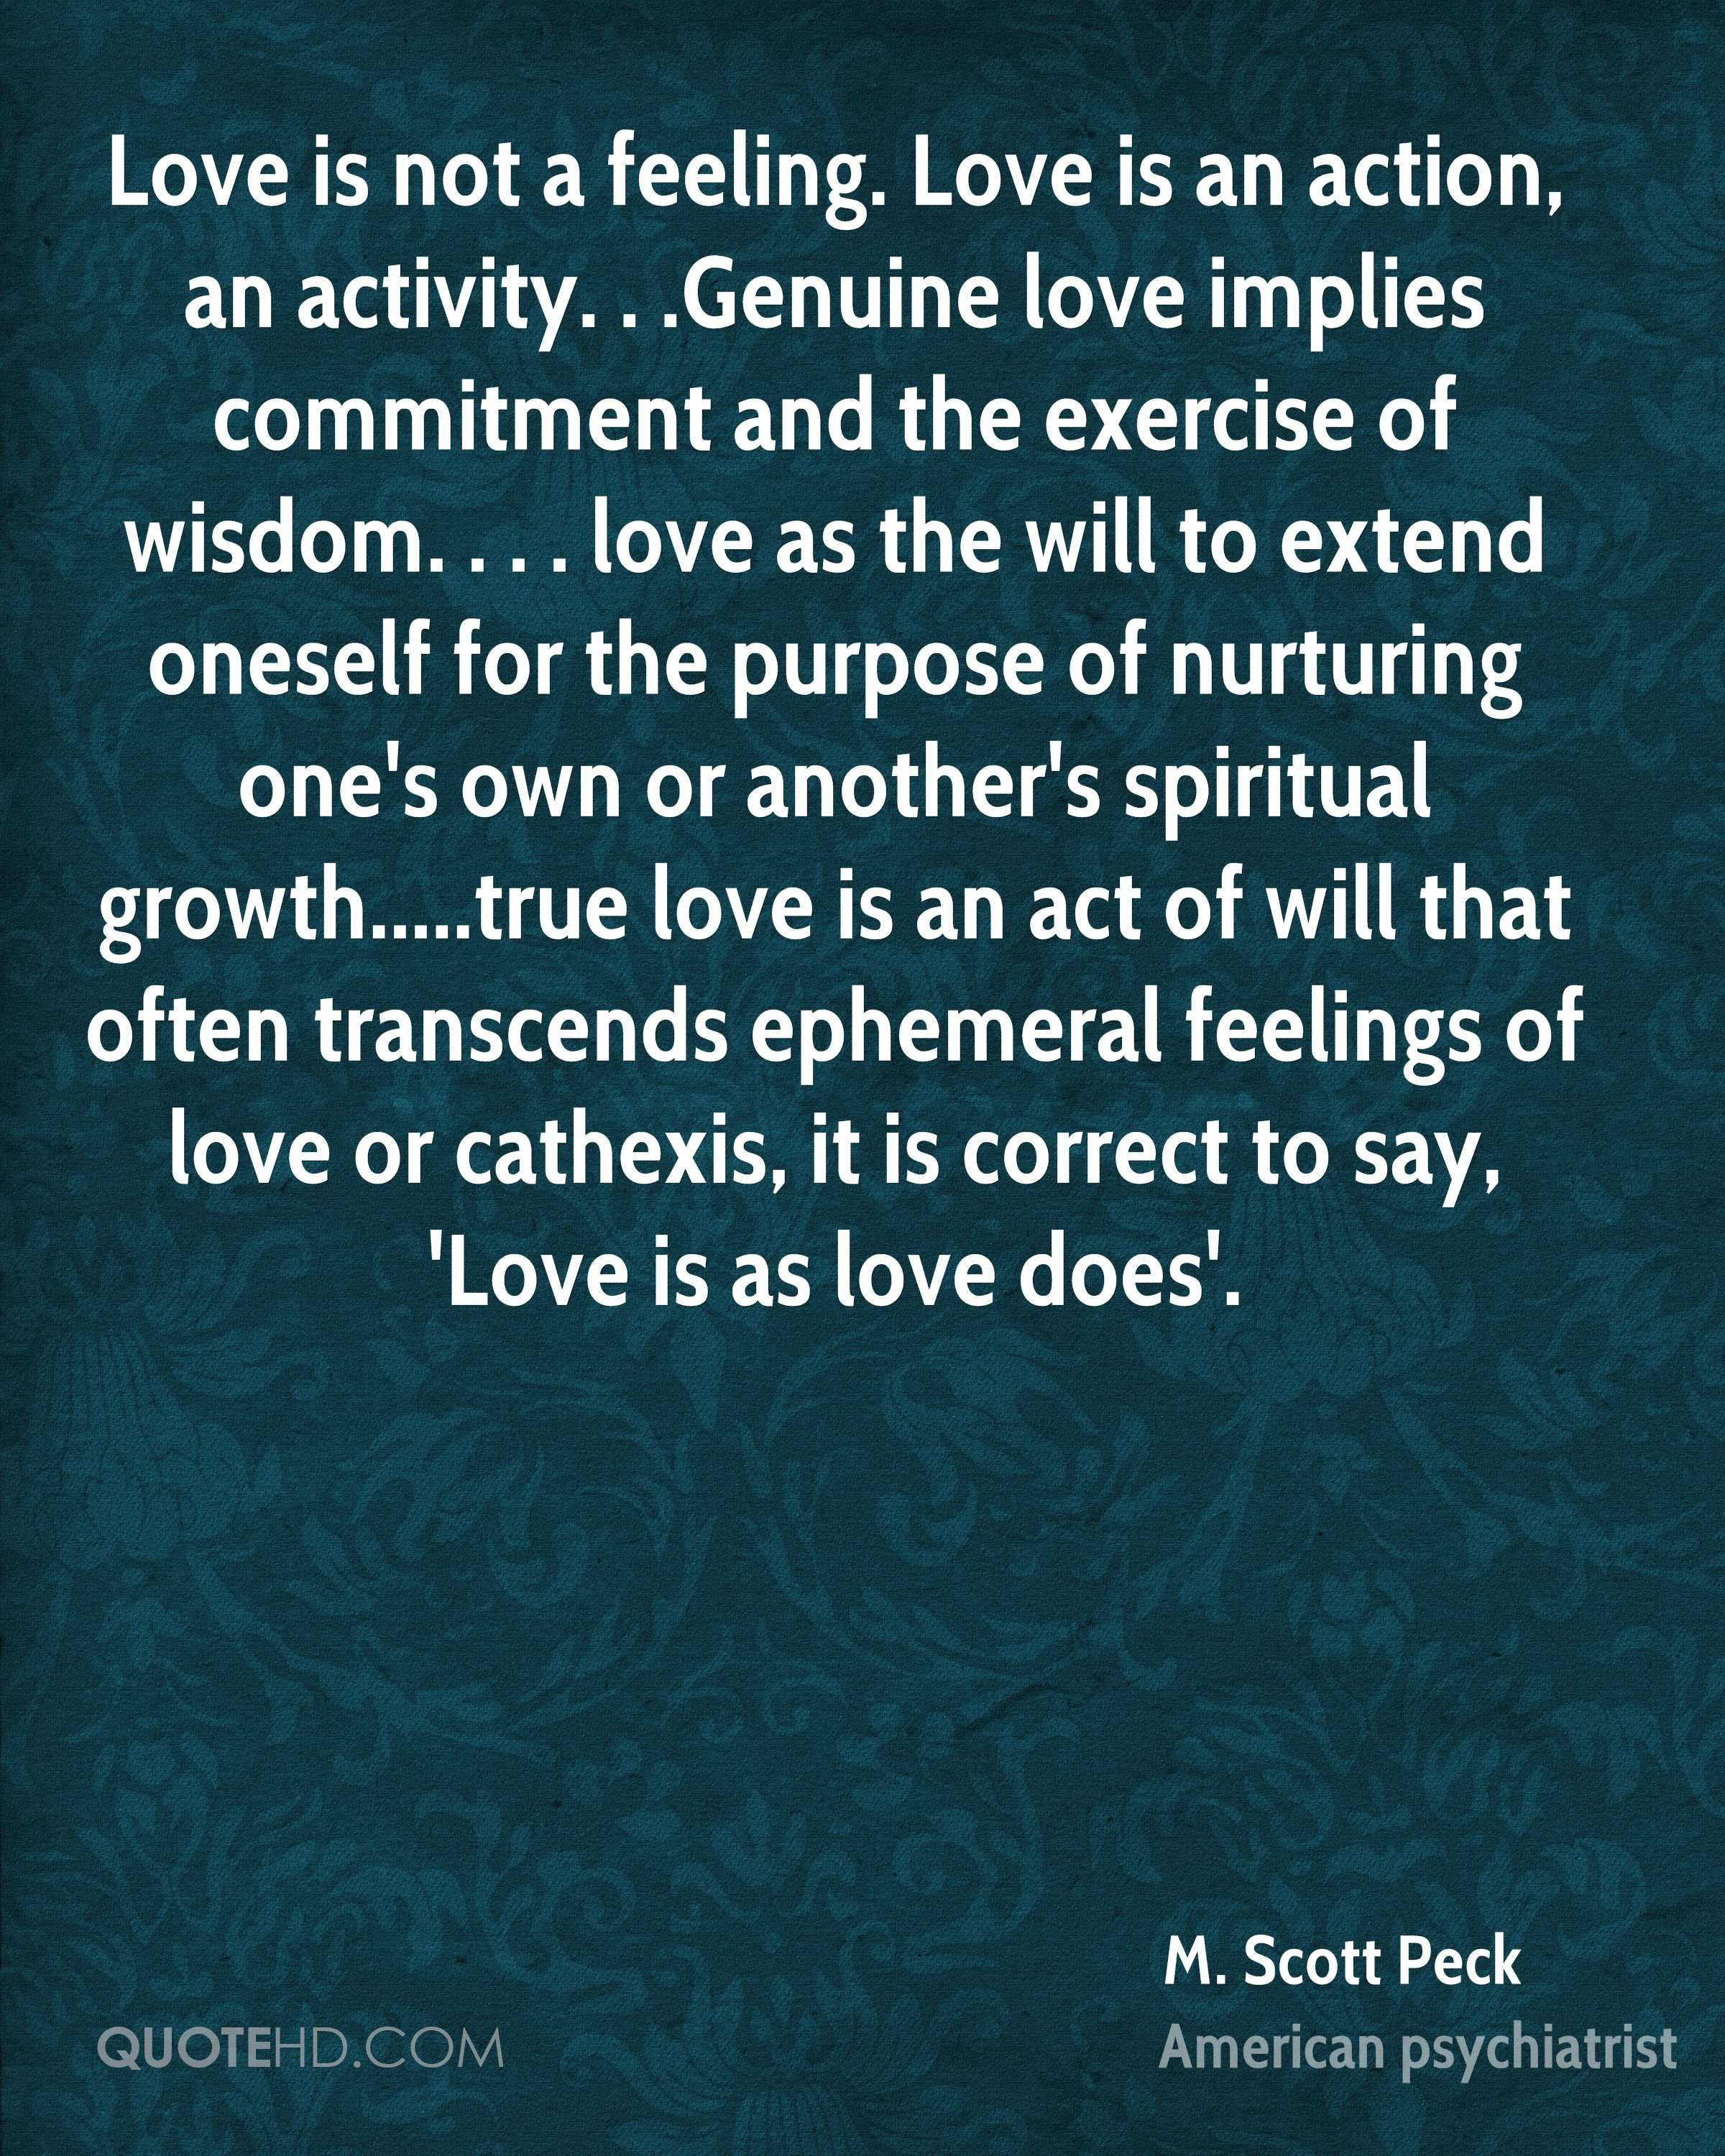 Love is not a feeling. Love is an action, an activity ...